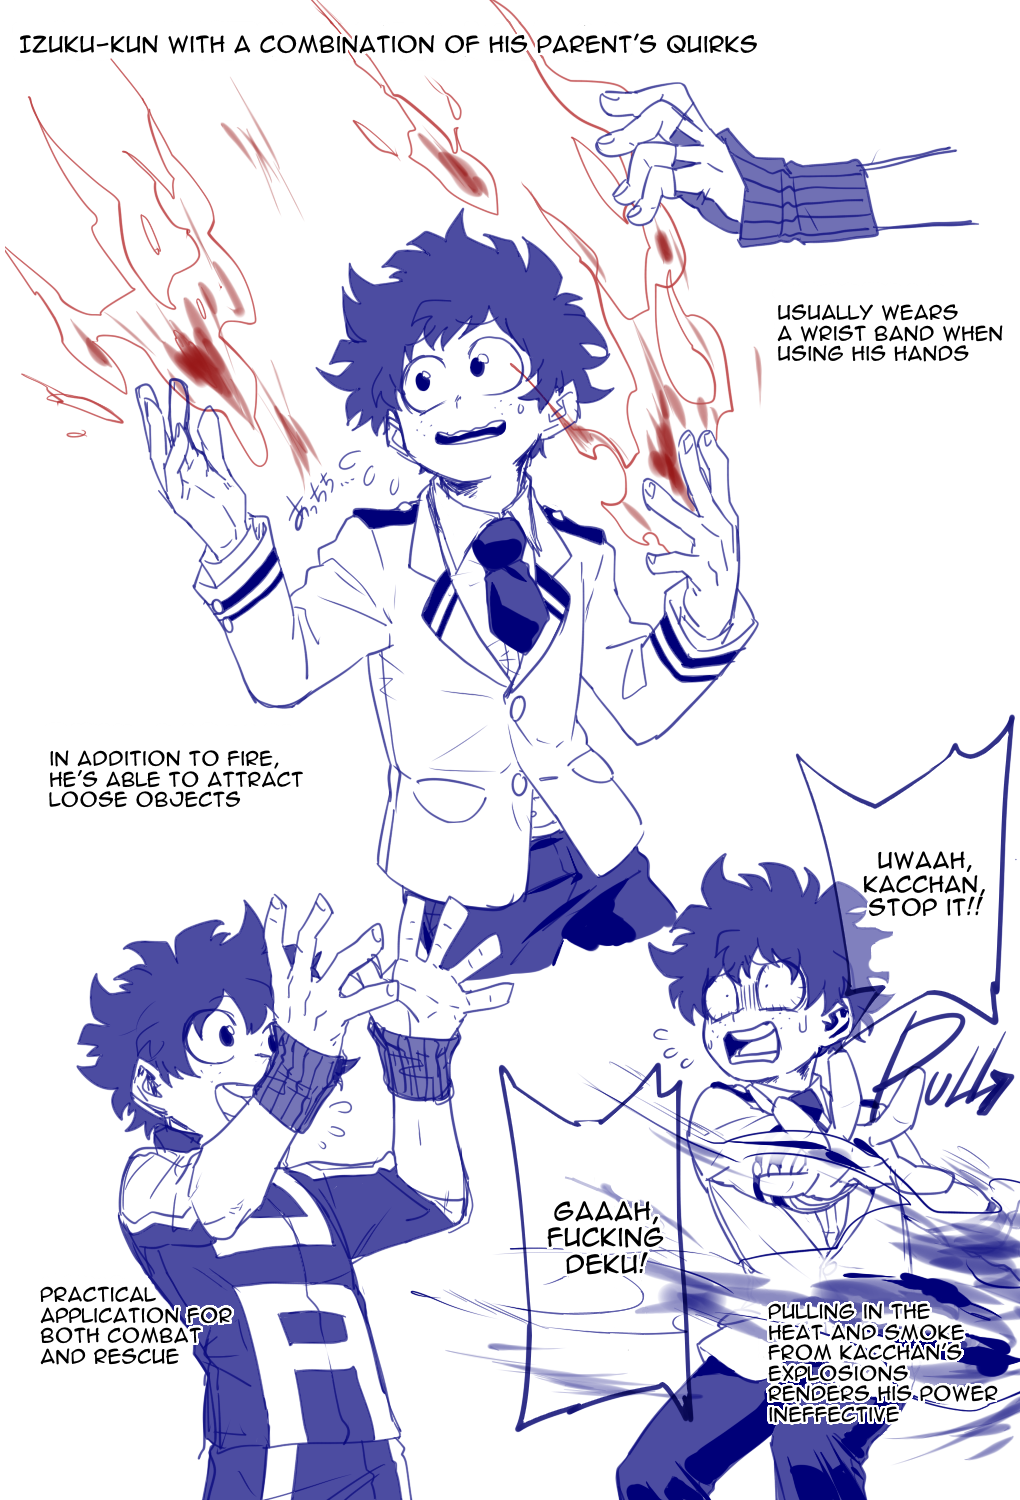 This is amazing! Also cute because Todo plus Kacchan have fire in